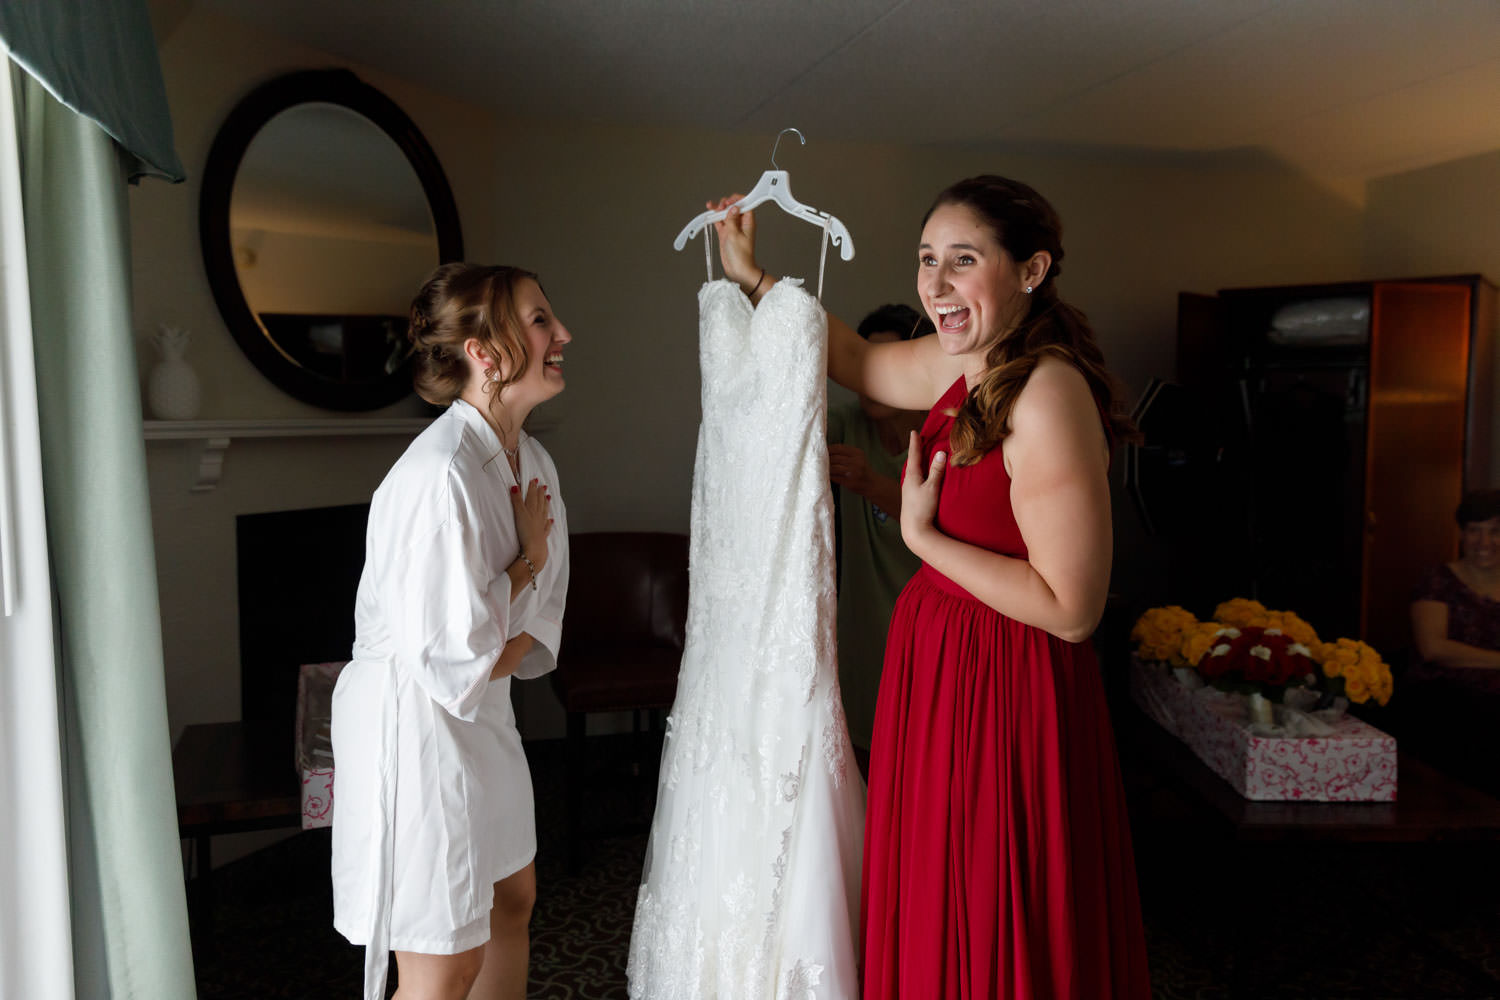 Bride and maid of honor holding wedding dress and laughing